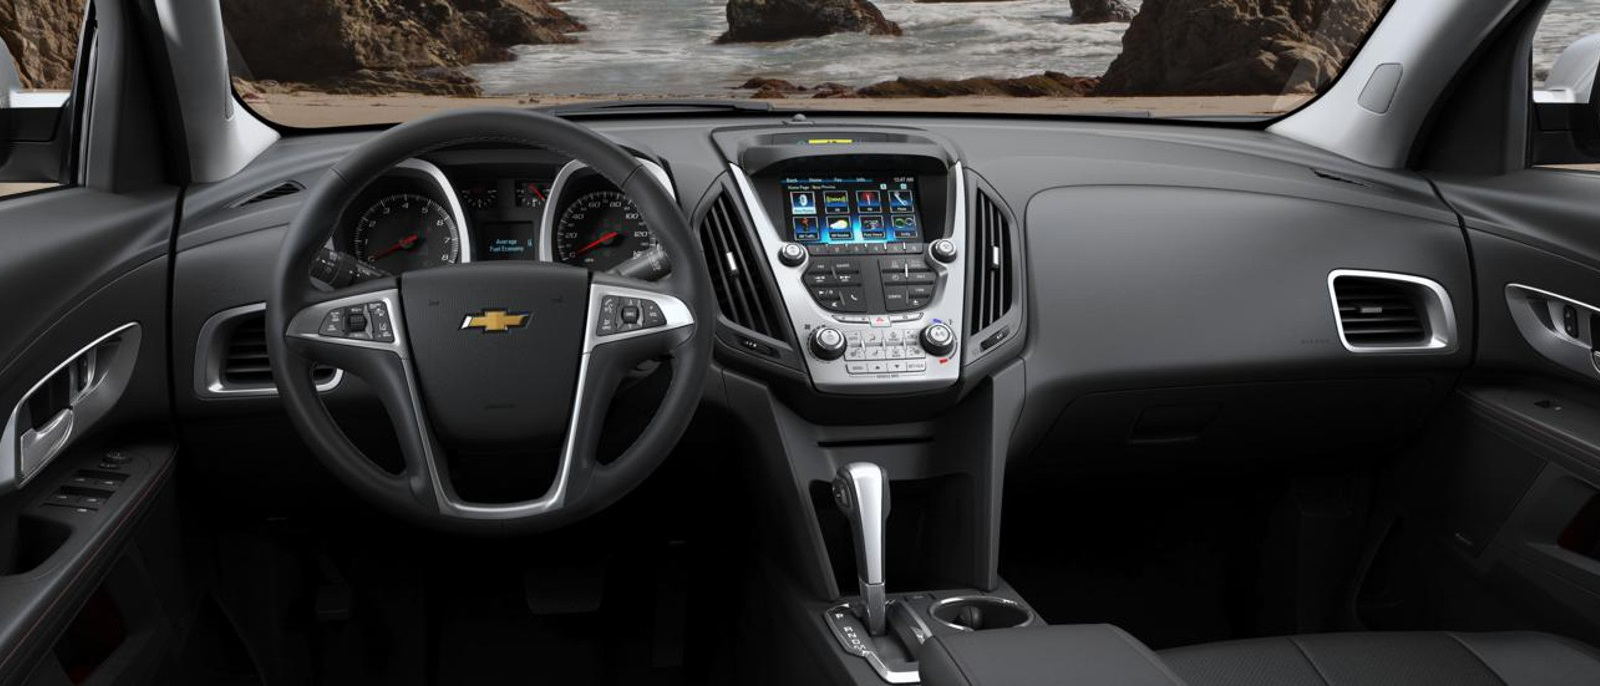 2015 chevrolet equinox gary merrillville | mike anderson chevy